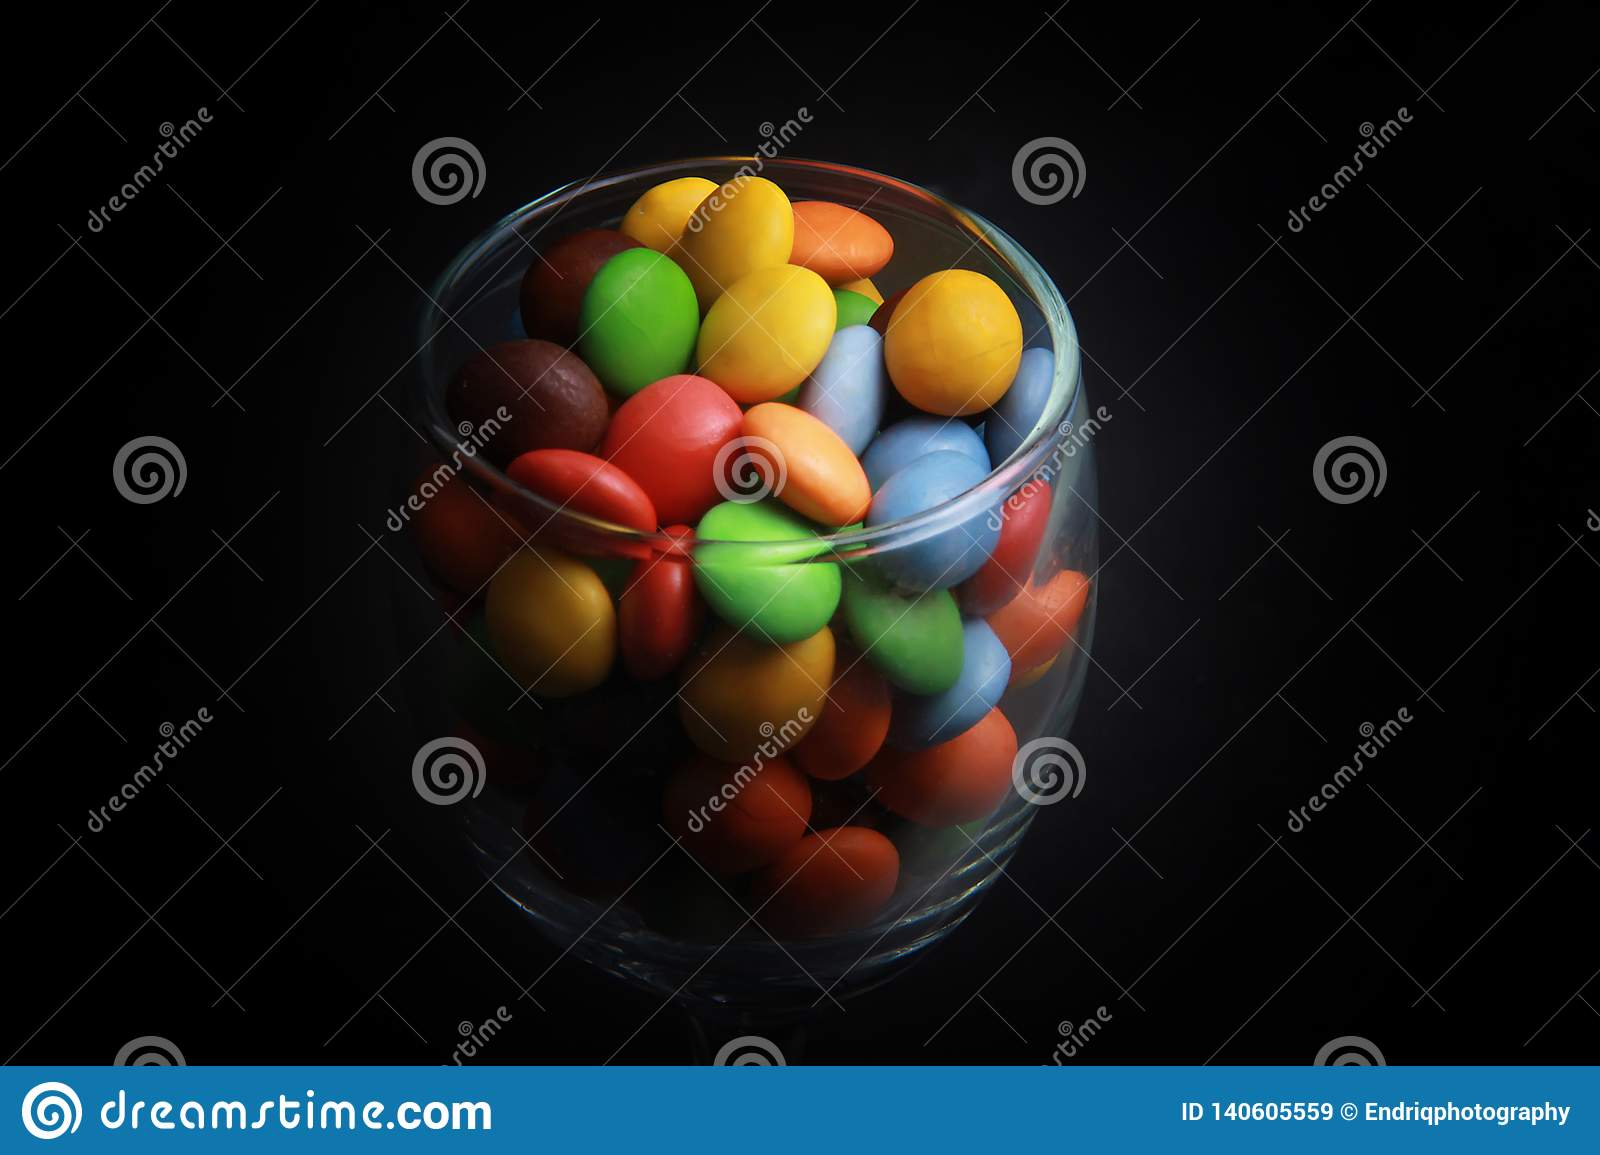 Colorful candies in a glass.